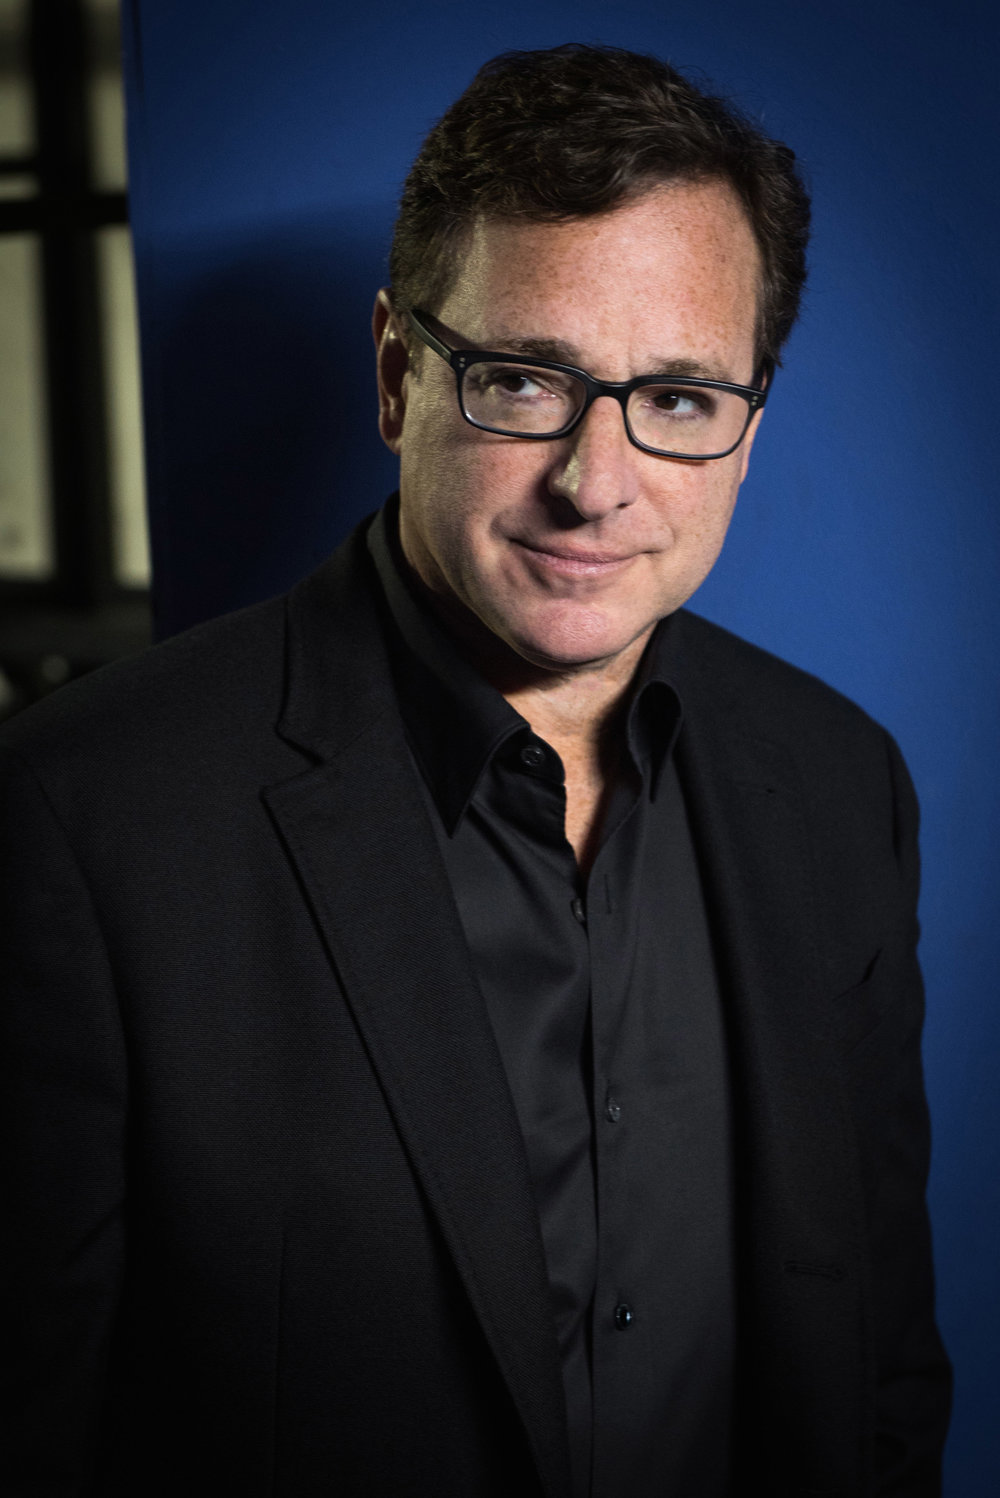 Bob Saget - Color 2 - Photo Credit Brian Friedman.jpg